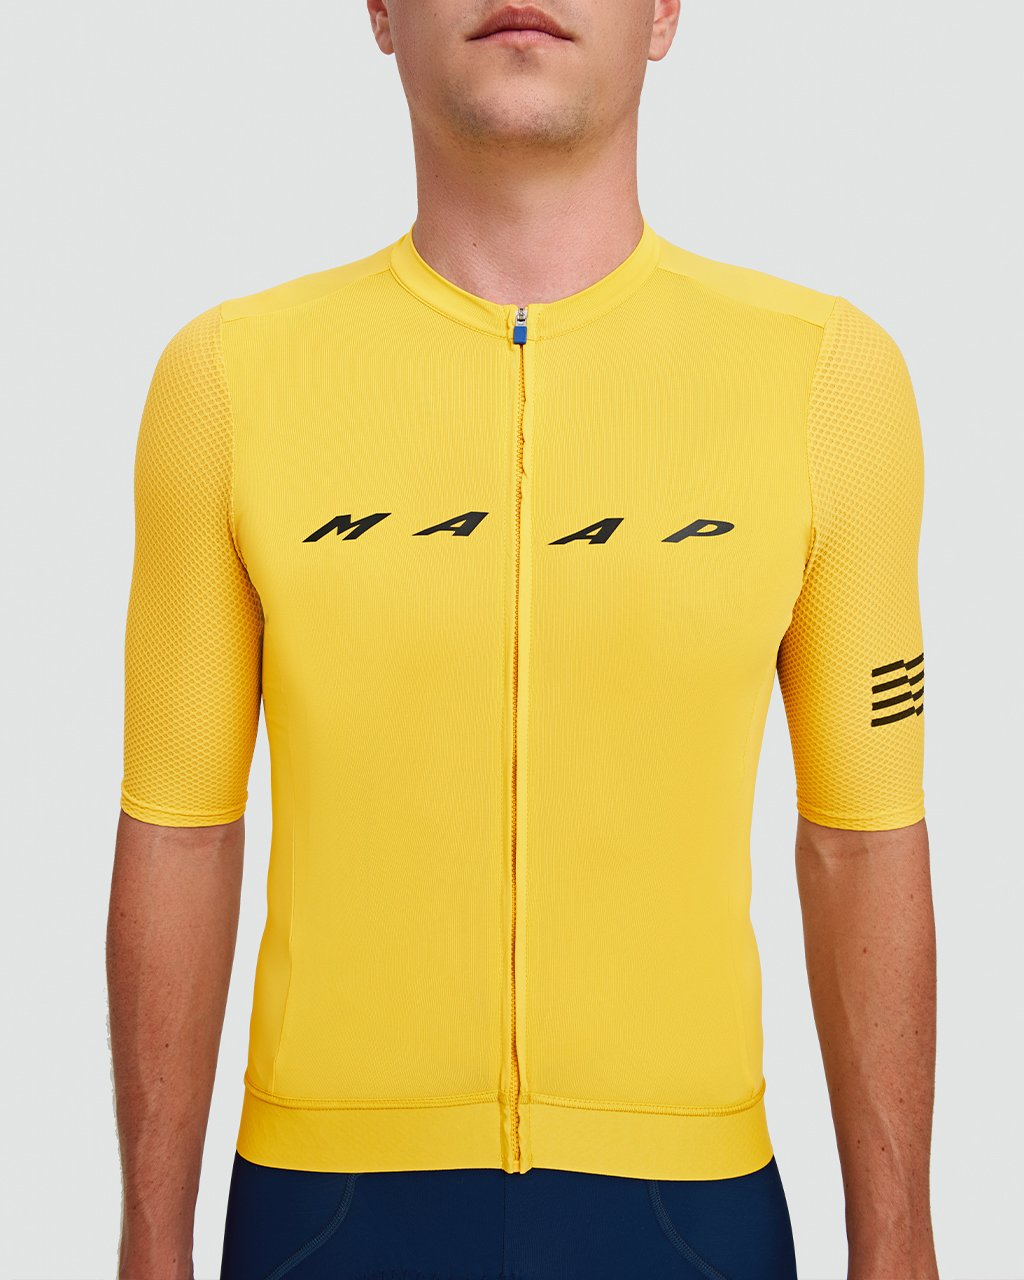 Evade Pro Base Jersey - Maize